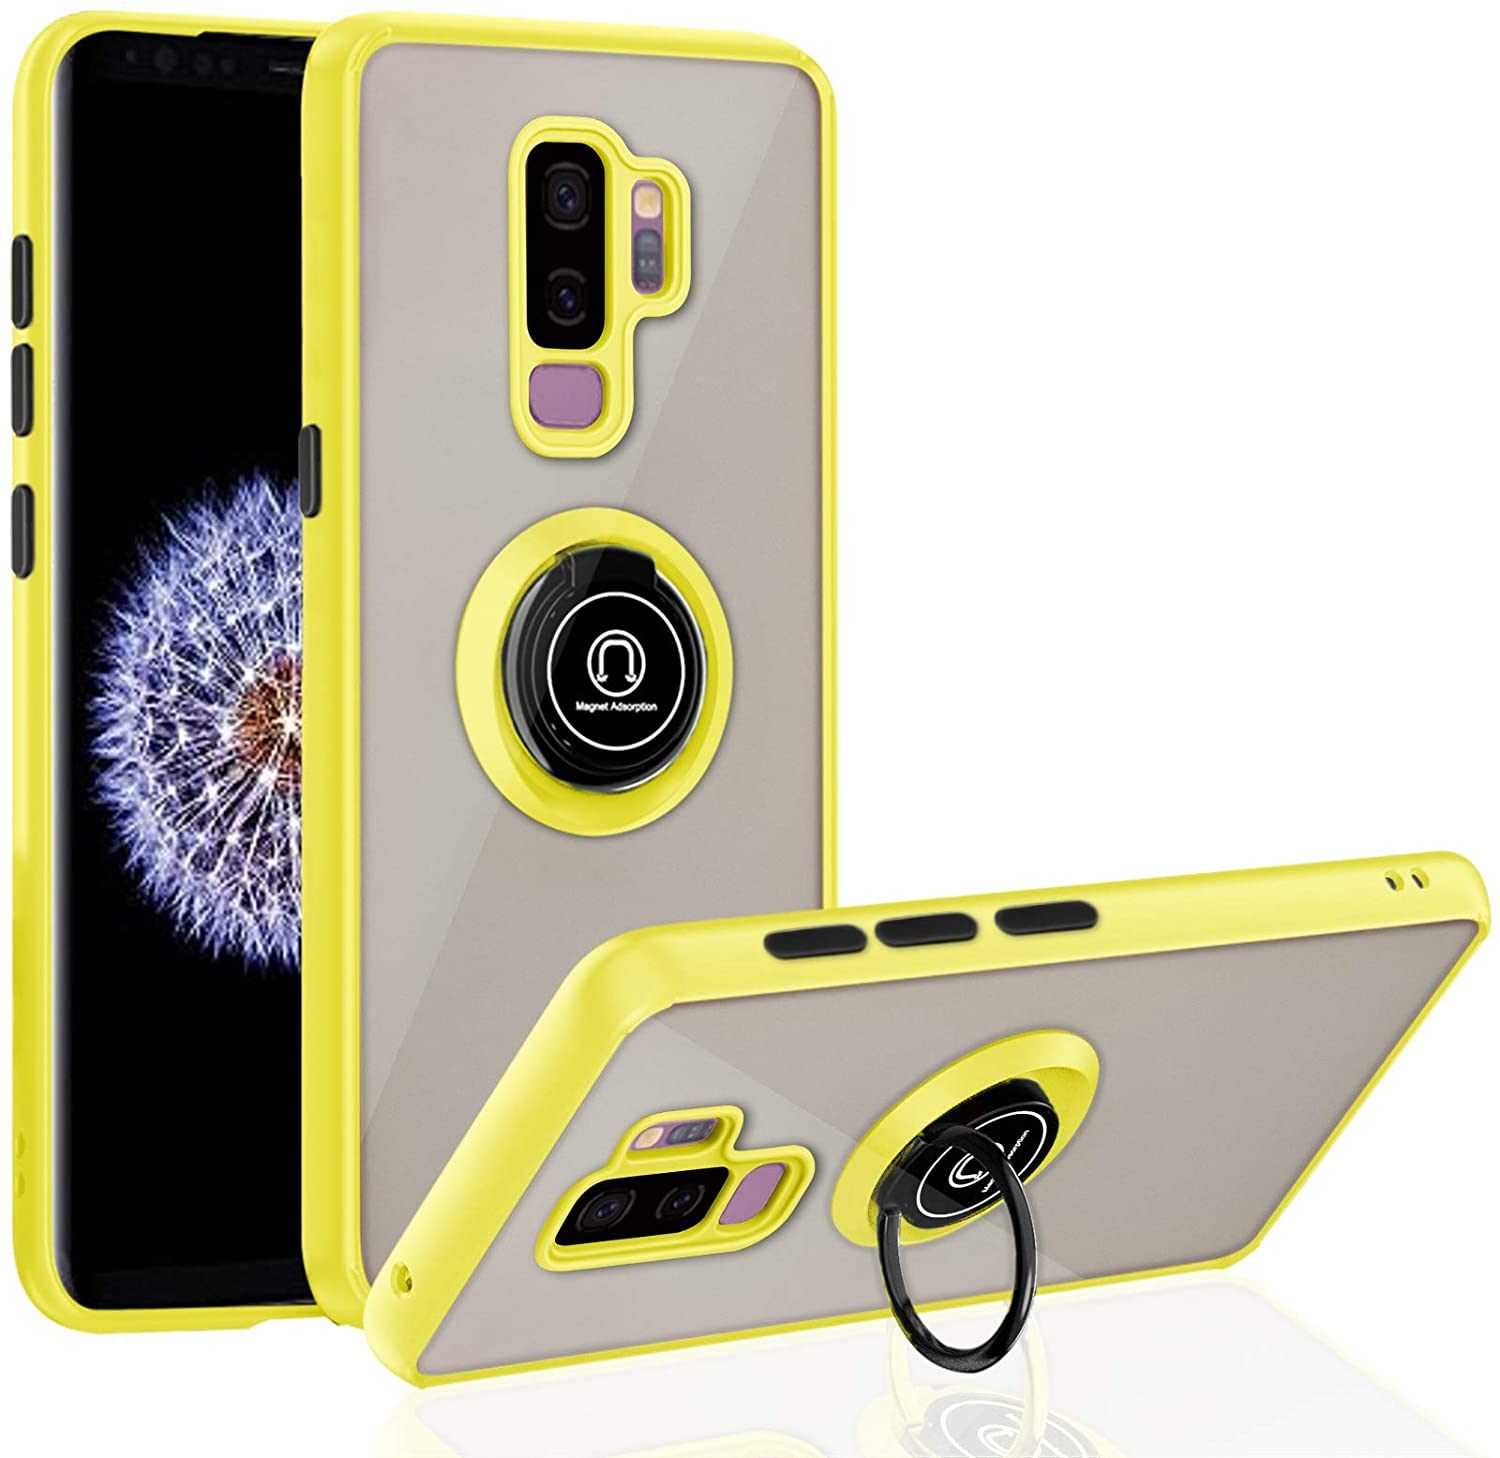 Samsung Galaxy S9 Plus Case with Ring 6.2 inch, Anti-Scratch Case with 360 Degree Rotation Finger Ring Kickstand Work with Magnetic Car Mount Compatible for Samsung Galaxy S9 Plus - Yellow